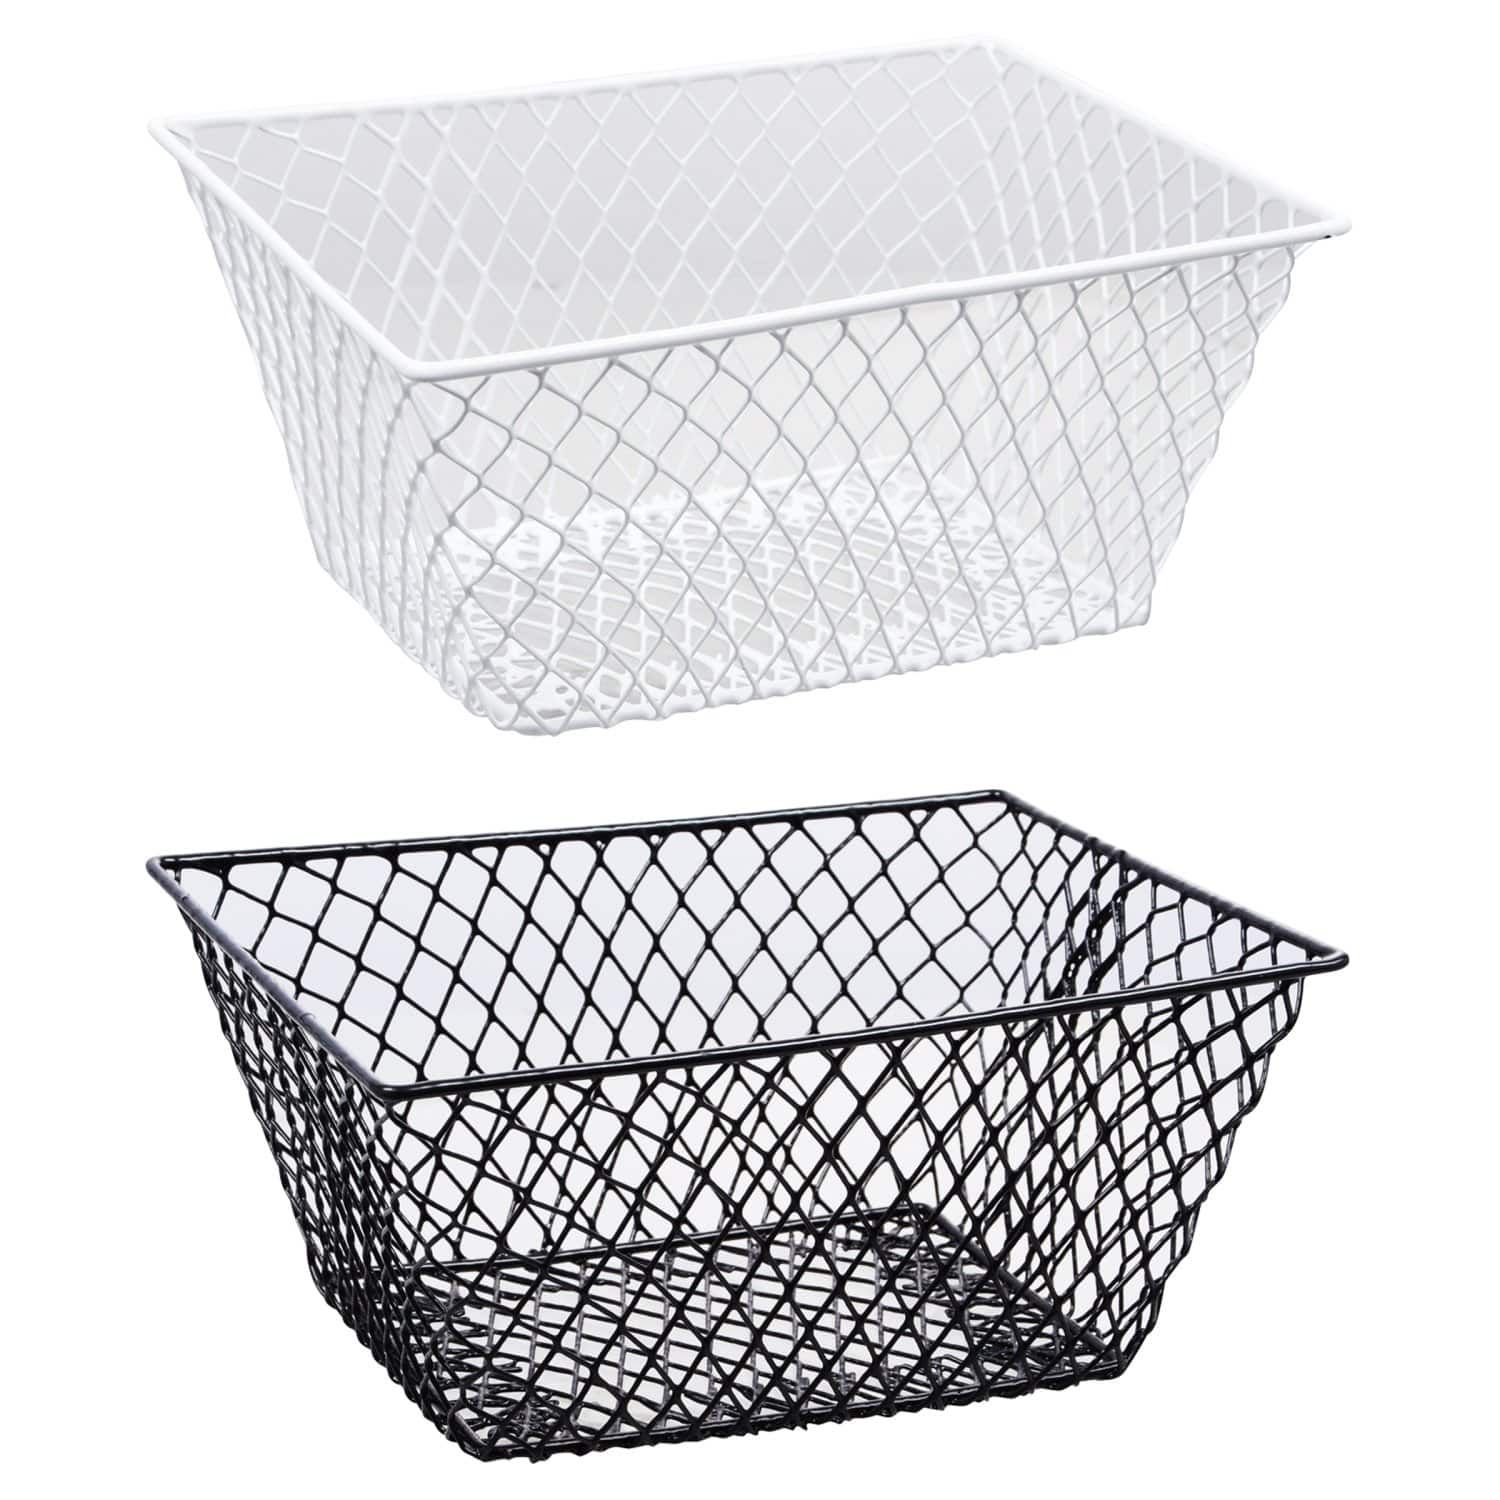 Essentials Metal Rectangular Wire Baskets with Handles images